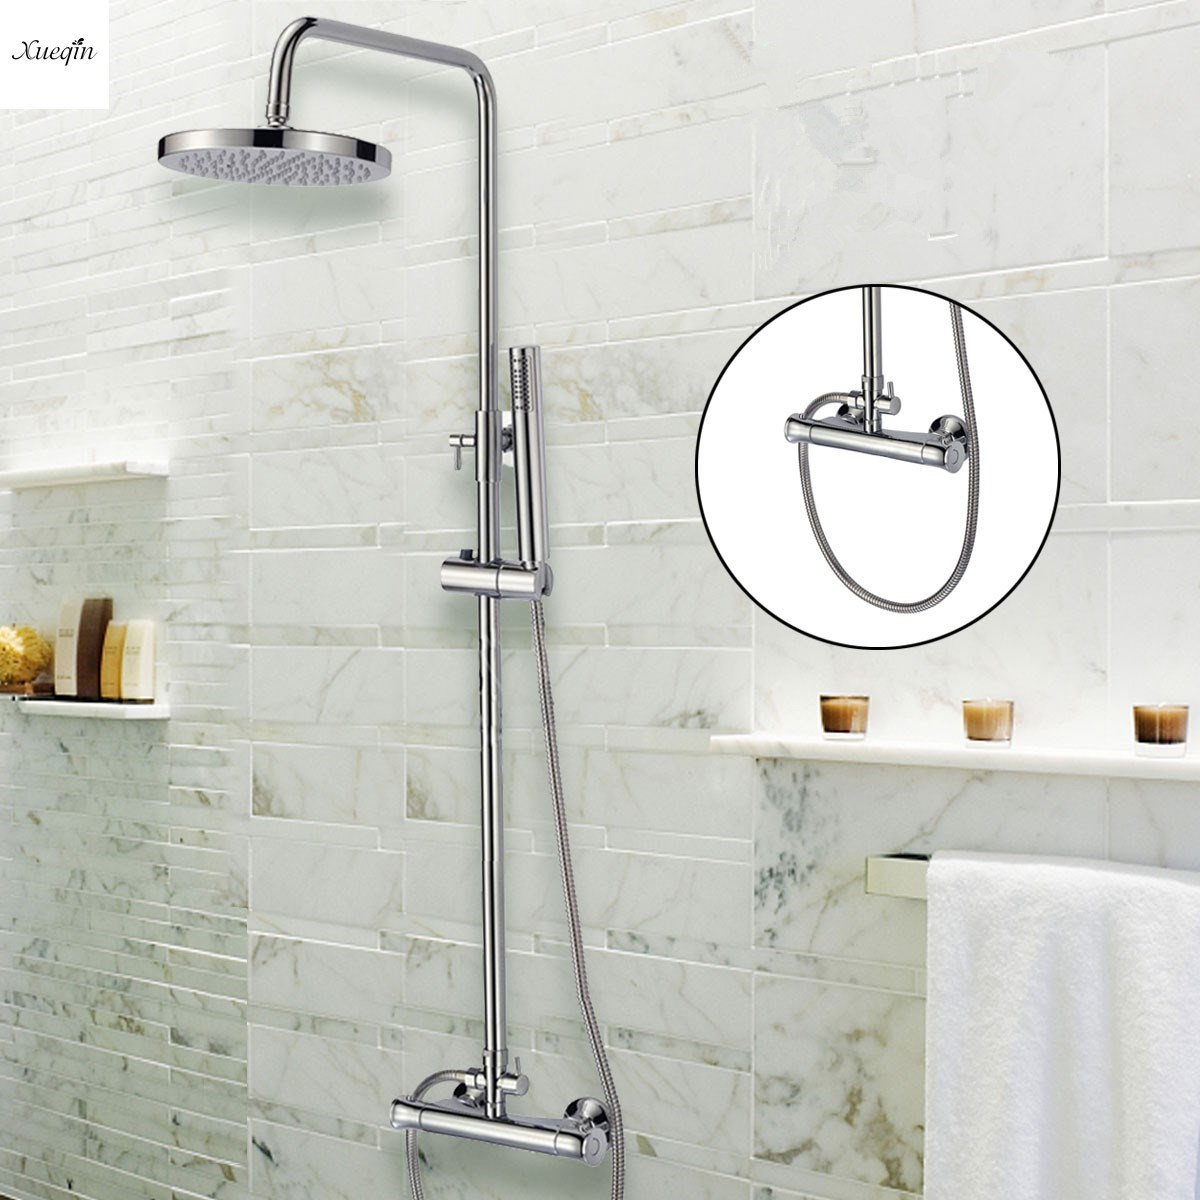 Chrome Brass Shower Faucet Rainfall Handheld Shower Sprayer Tub Mixer Tap Set Round Panel Bath Shower Thermostatic Wall Mounted cailyn illumineral powder foundation sunny beige пудра минеральная тон 03 4 г